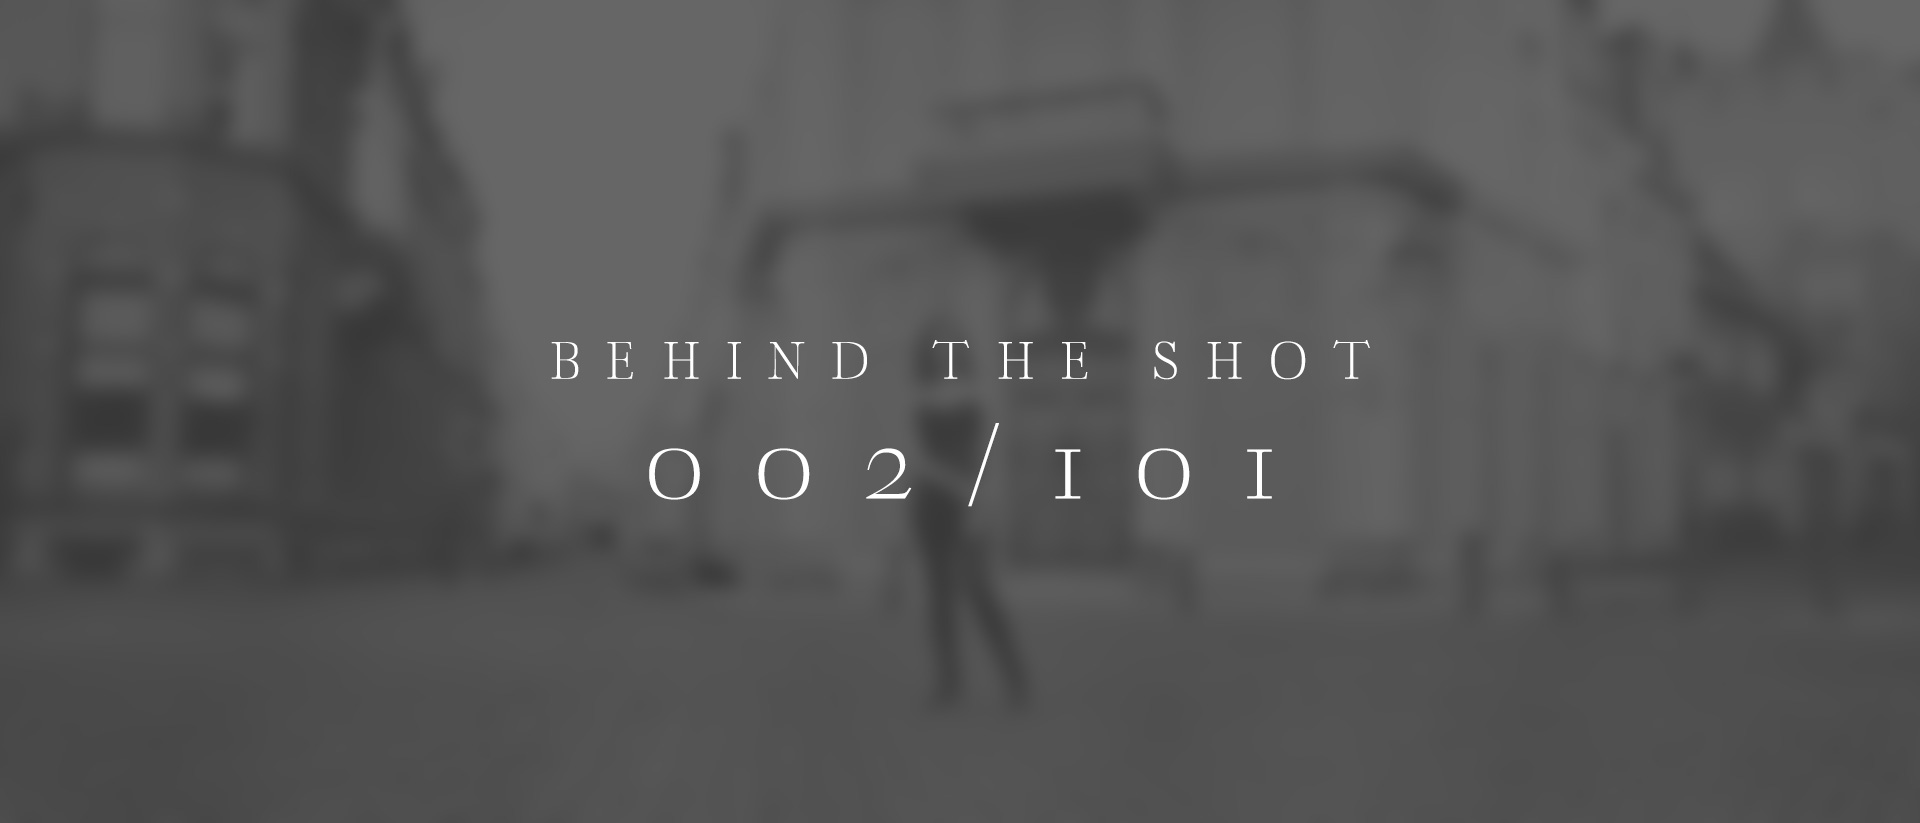 Behind the Shot - 002/101